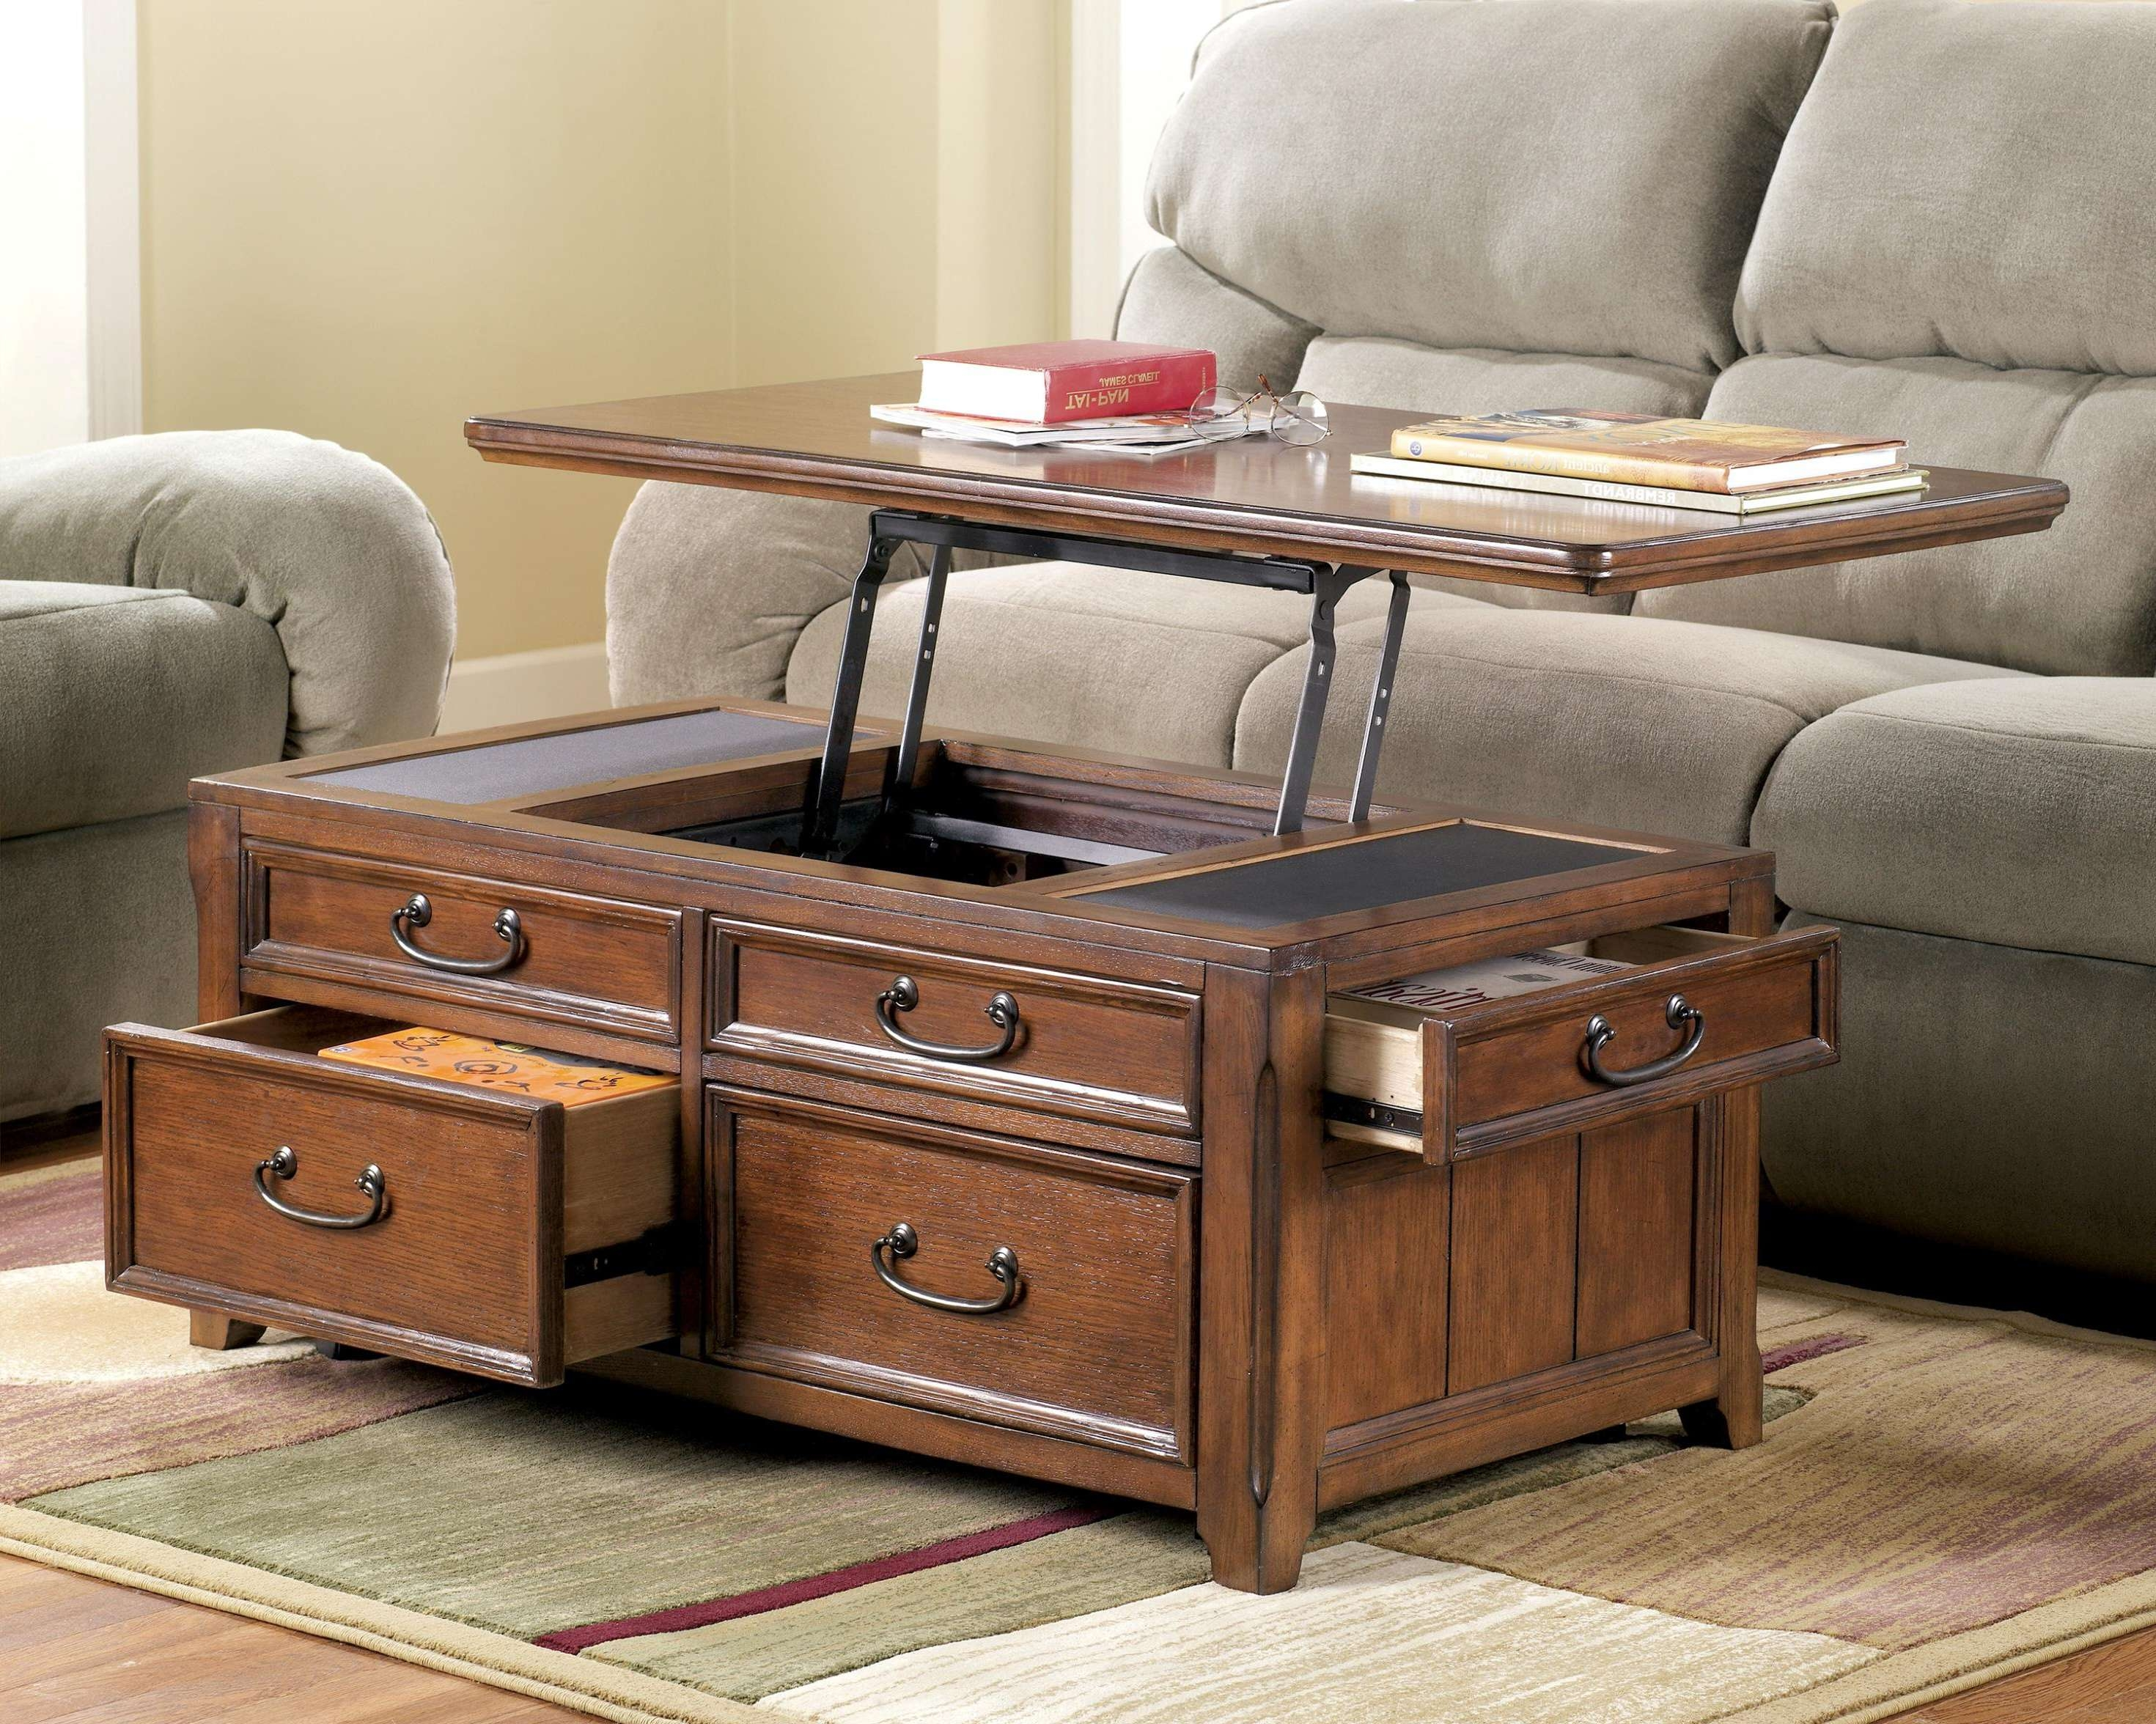 Coffee Tables : Large Trunk Coffee Tables Chest Table Remarkable Throughout Most Popular Trunk Coffee Tables (View 10 of 20)